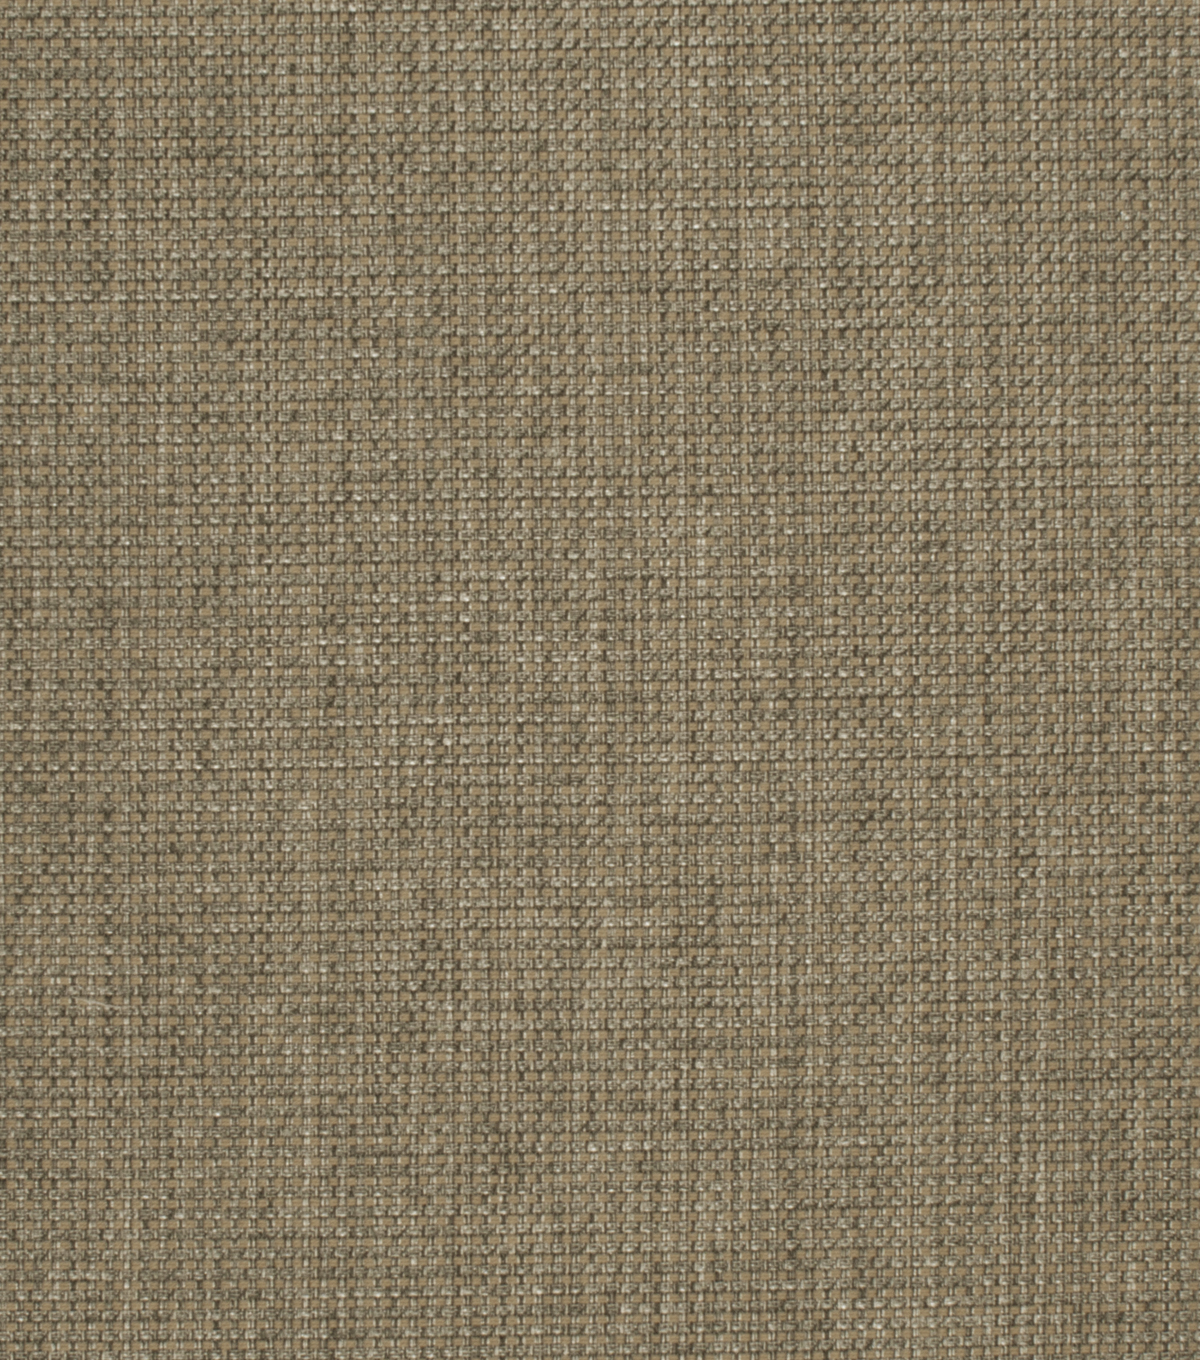 Home Decor 8x8 Fabric Swatch-Eaton Square Skylar Pewter